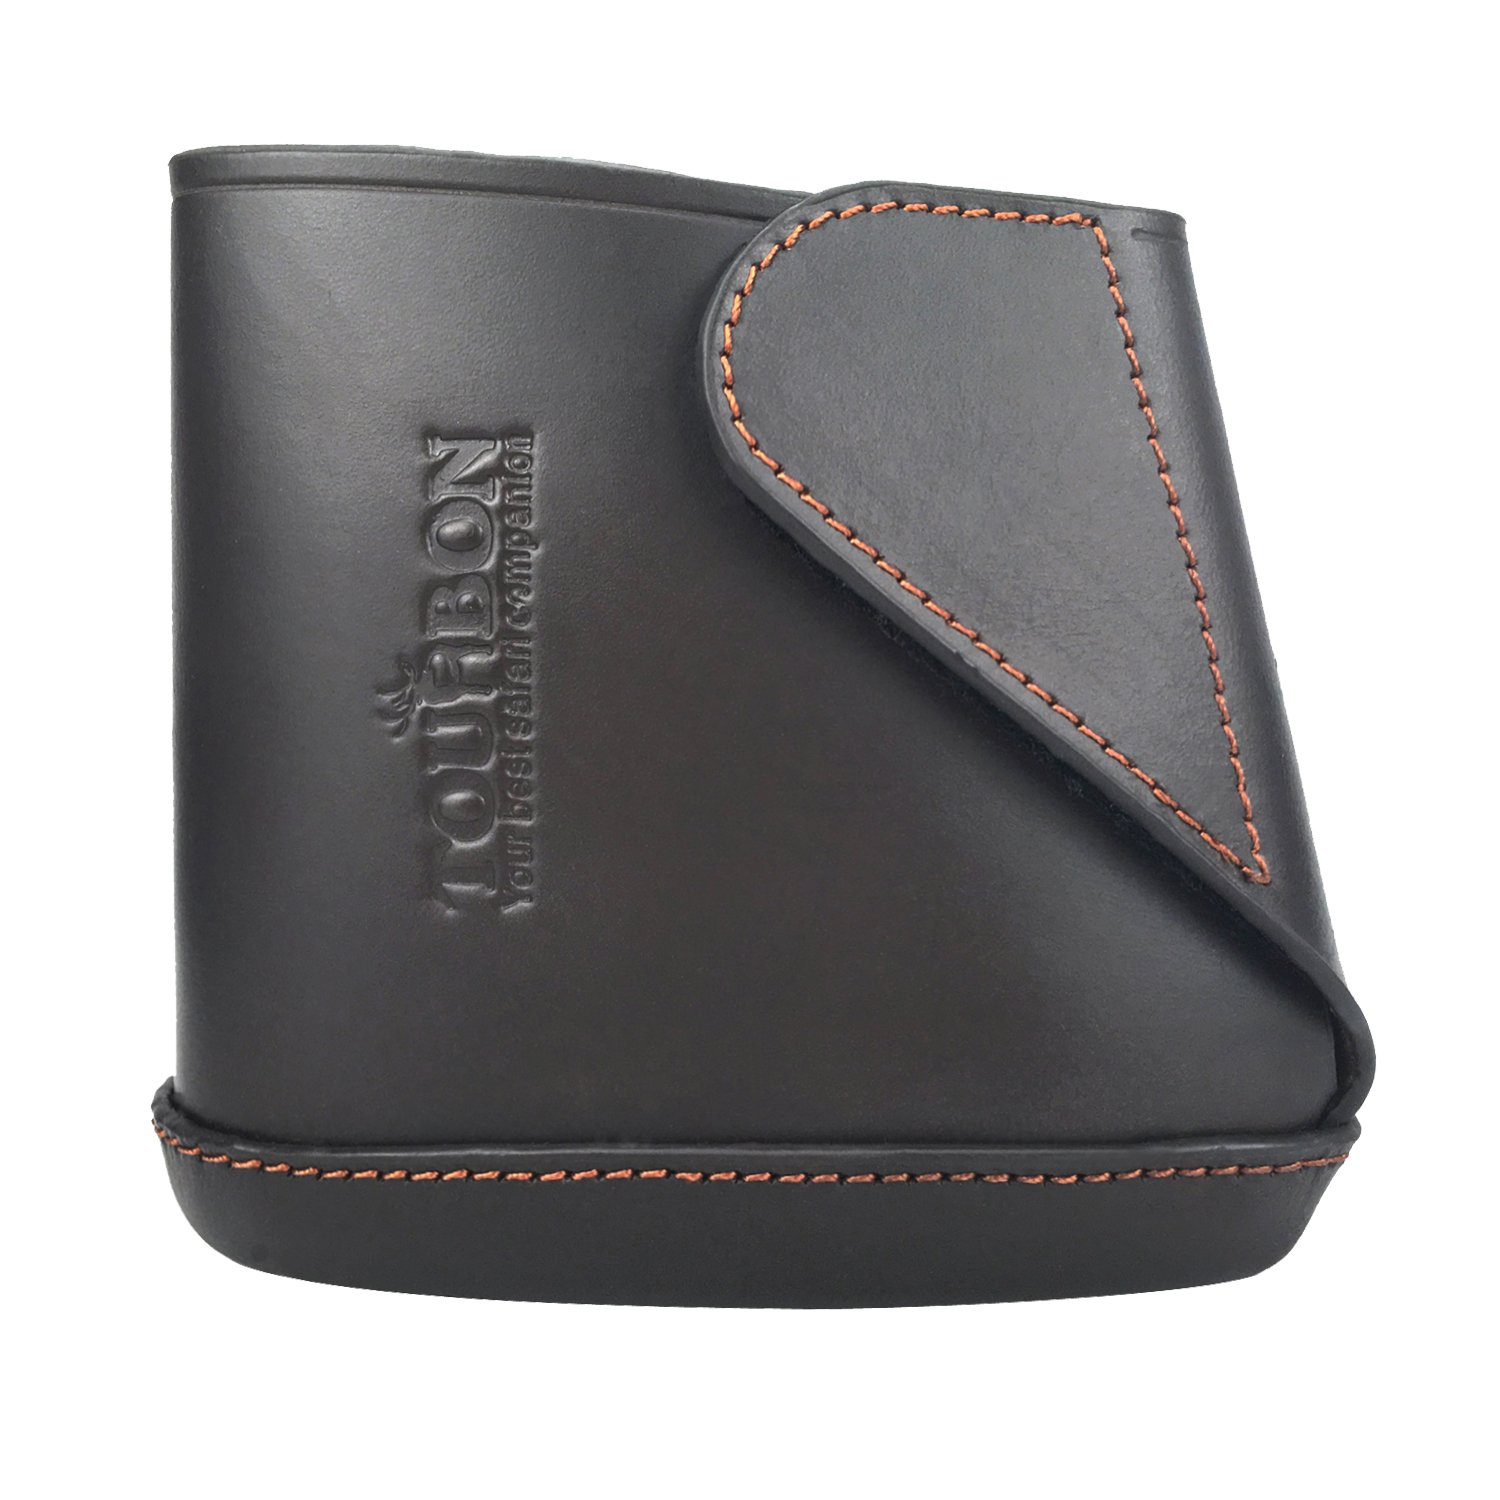 Savage Island Leather Slip On Shotgun Recoil Pad Stock Butt Extension Clay Pigeon//Field